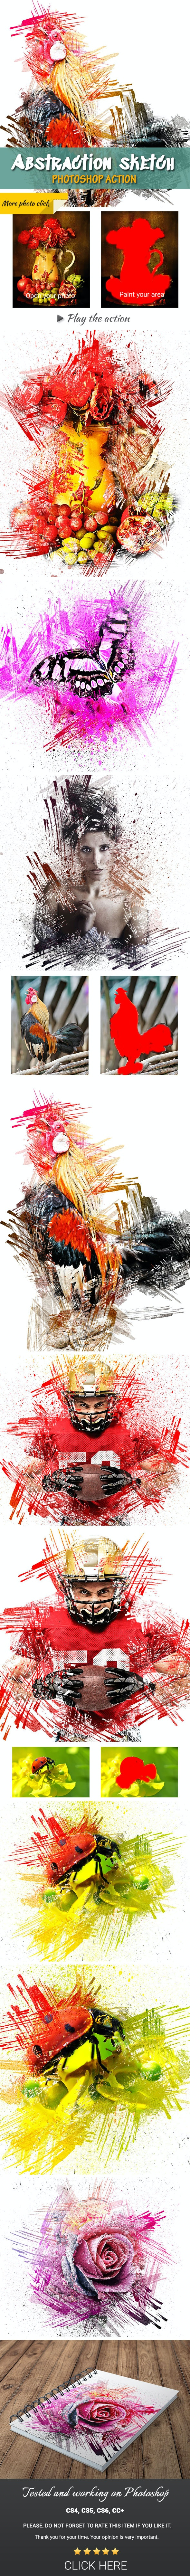 Abstraction Sketch Photoshop Action - Photo Effects Actions